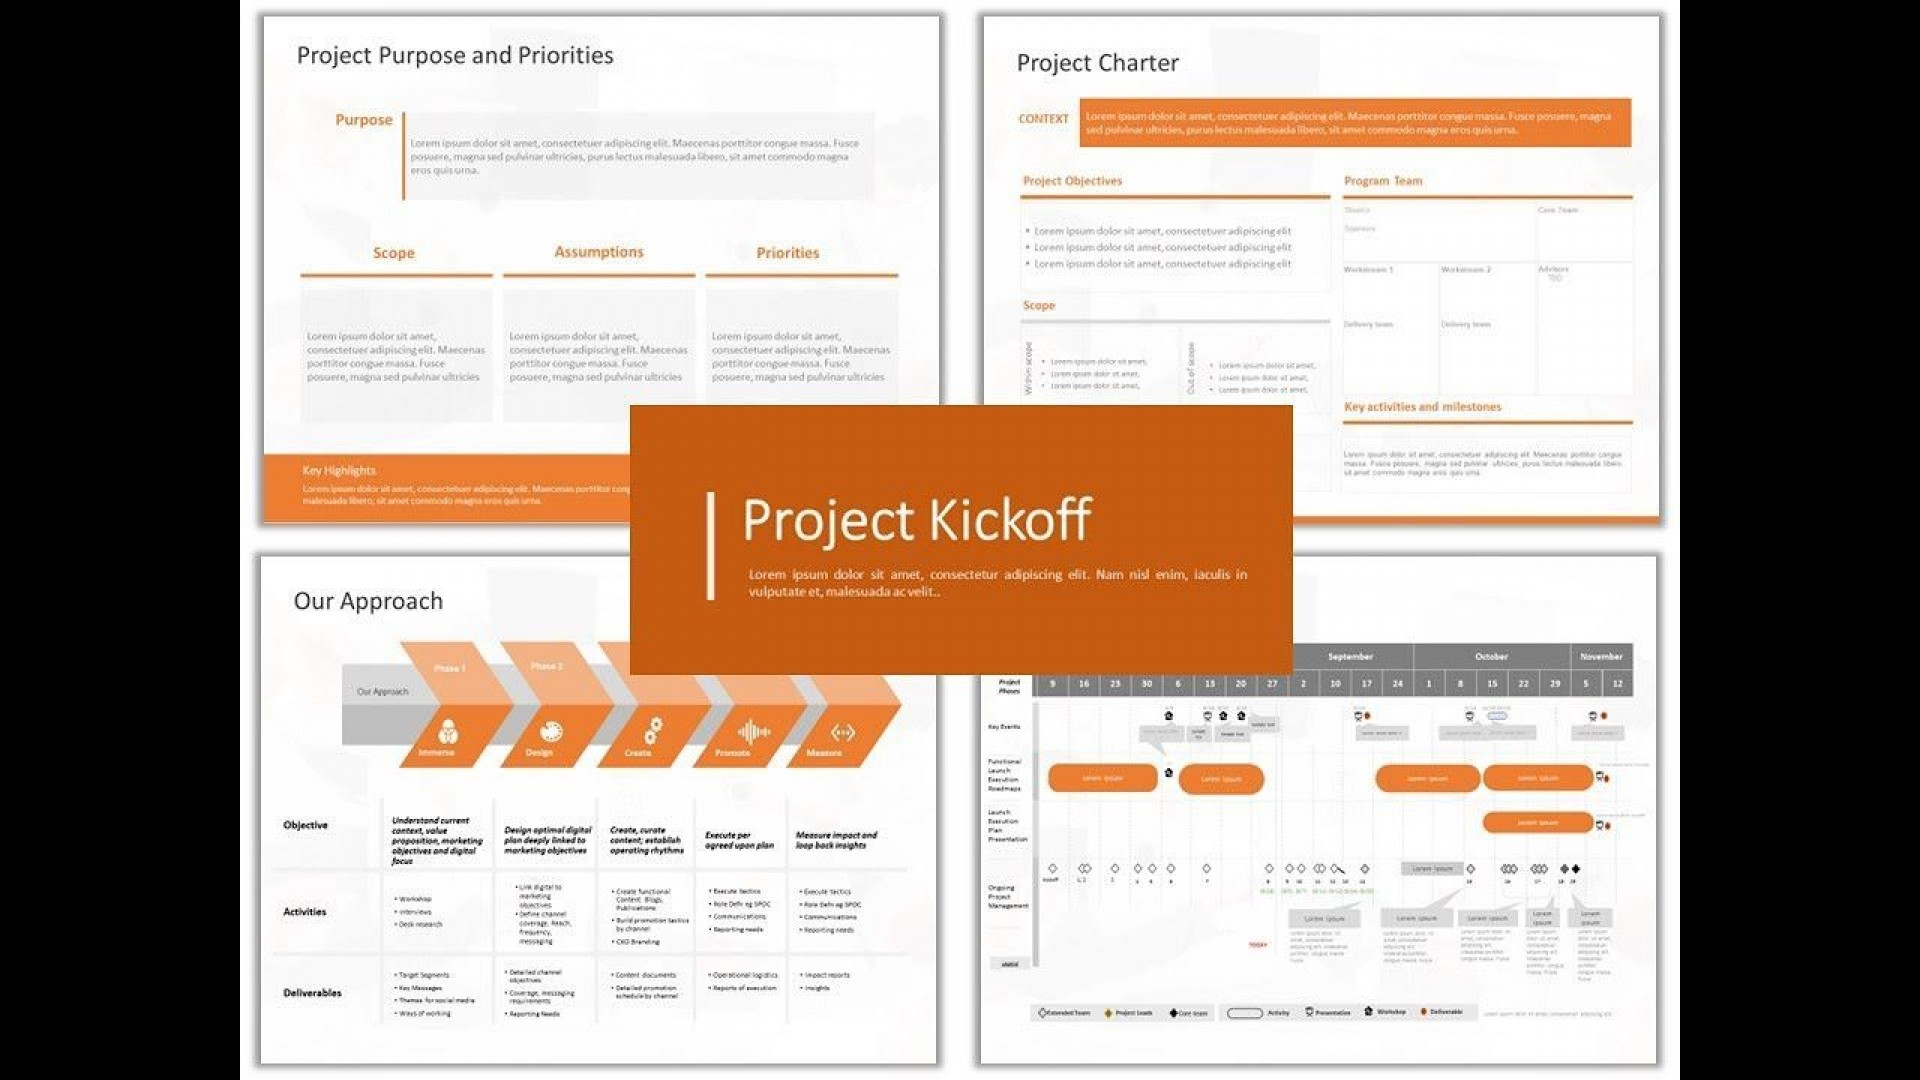 003 Exceptional Project Management Kick Off Meeting Agenda Template High Resolution  Kickoff1920